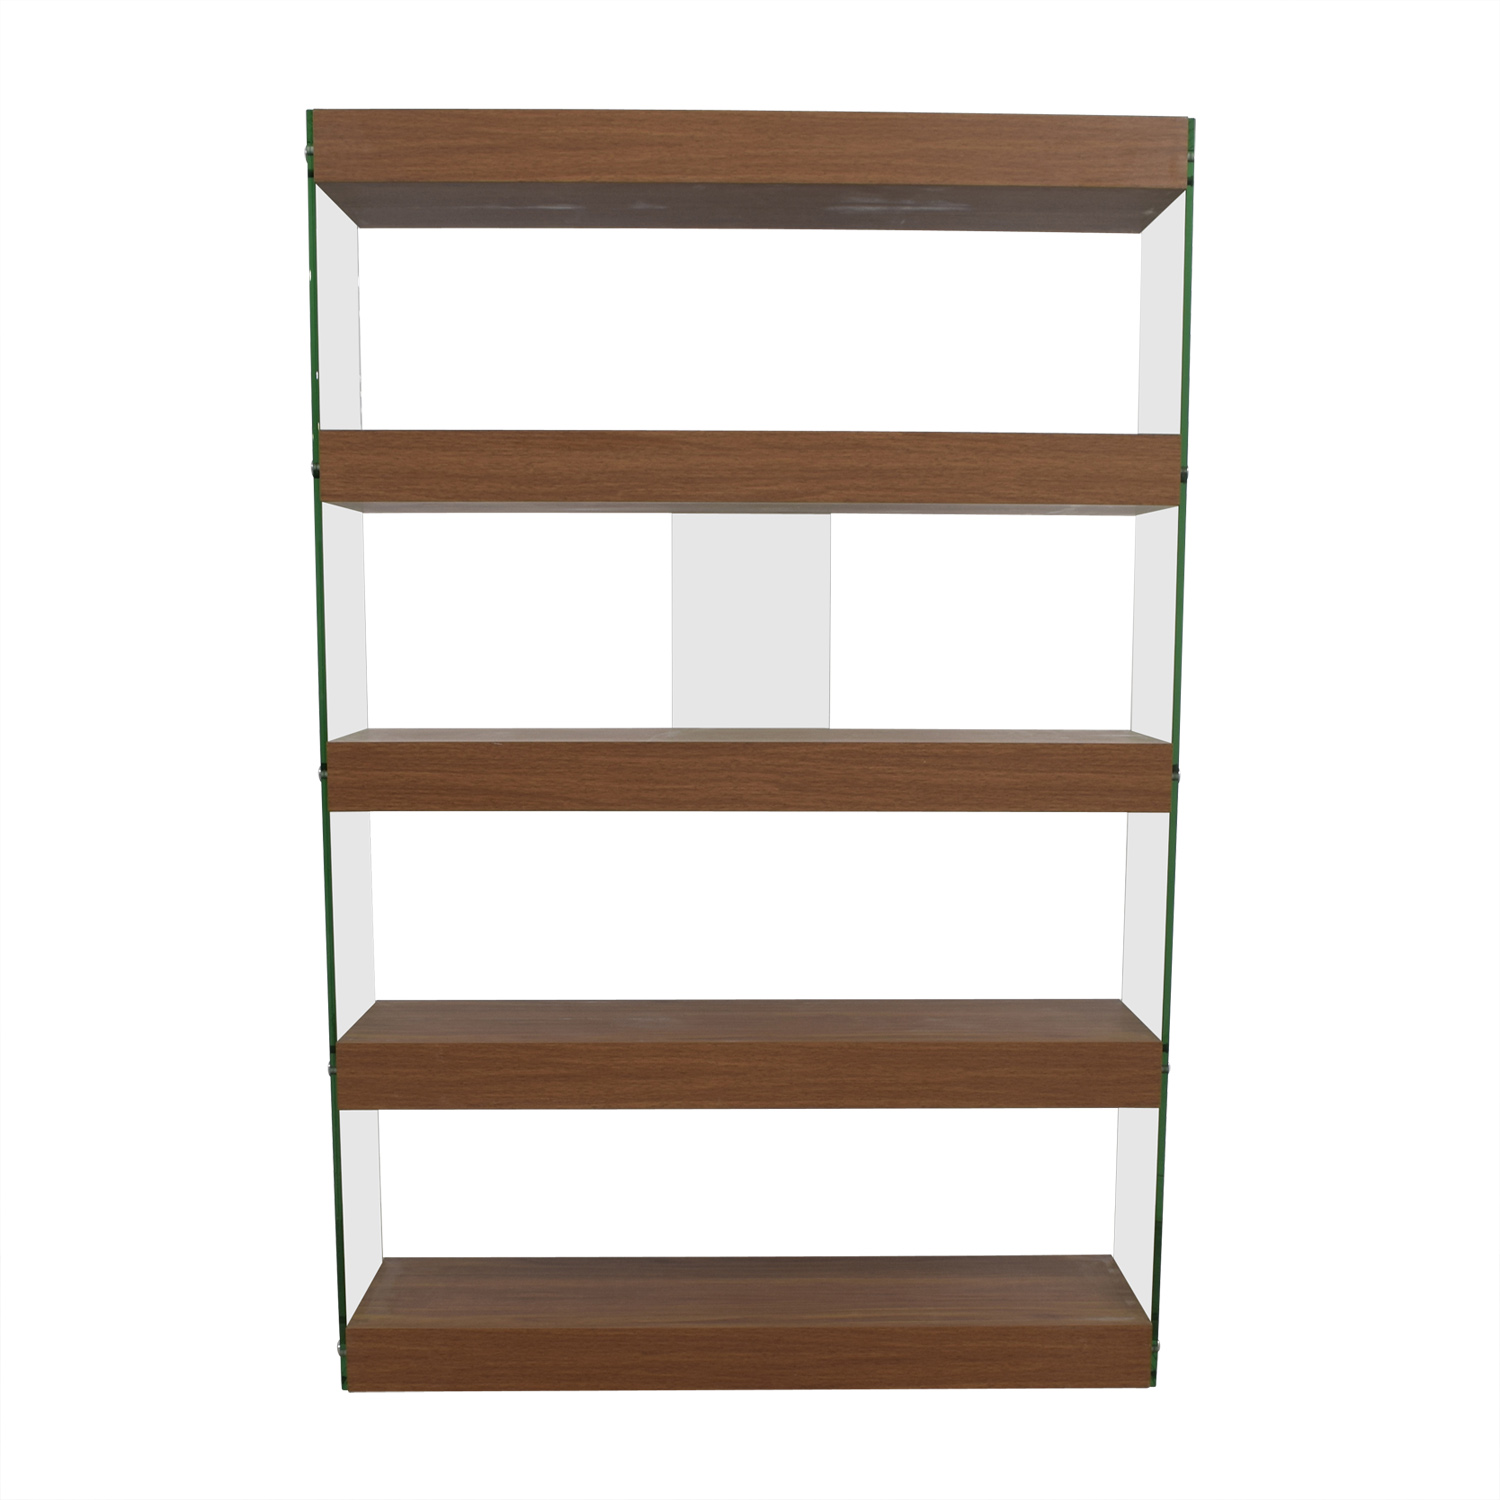 buy Made.com Wood and Glass Bookcase Made.com Bookcases & Shelving